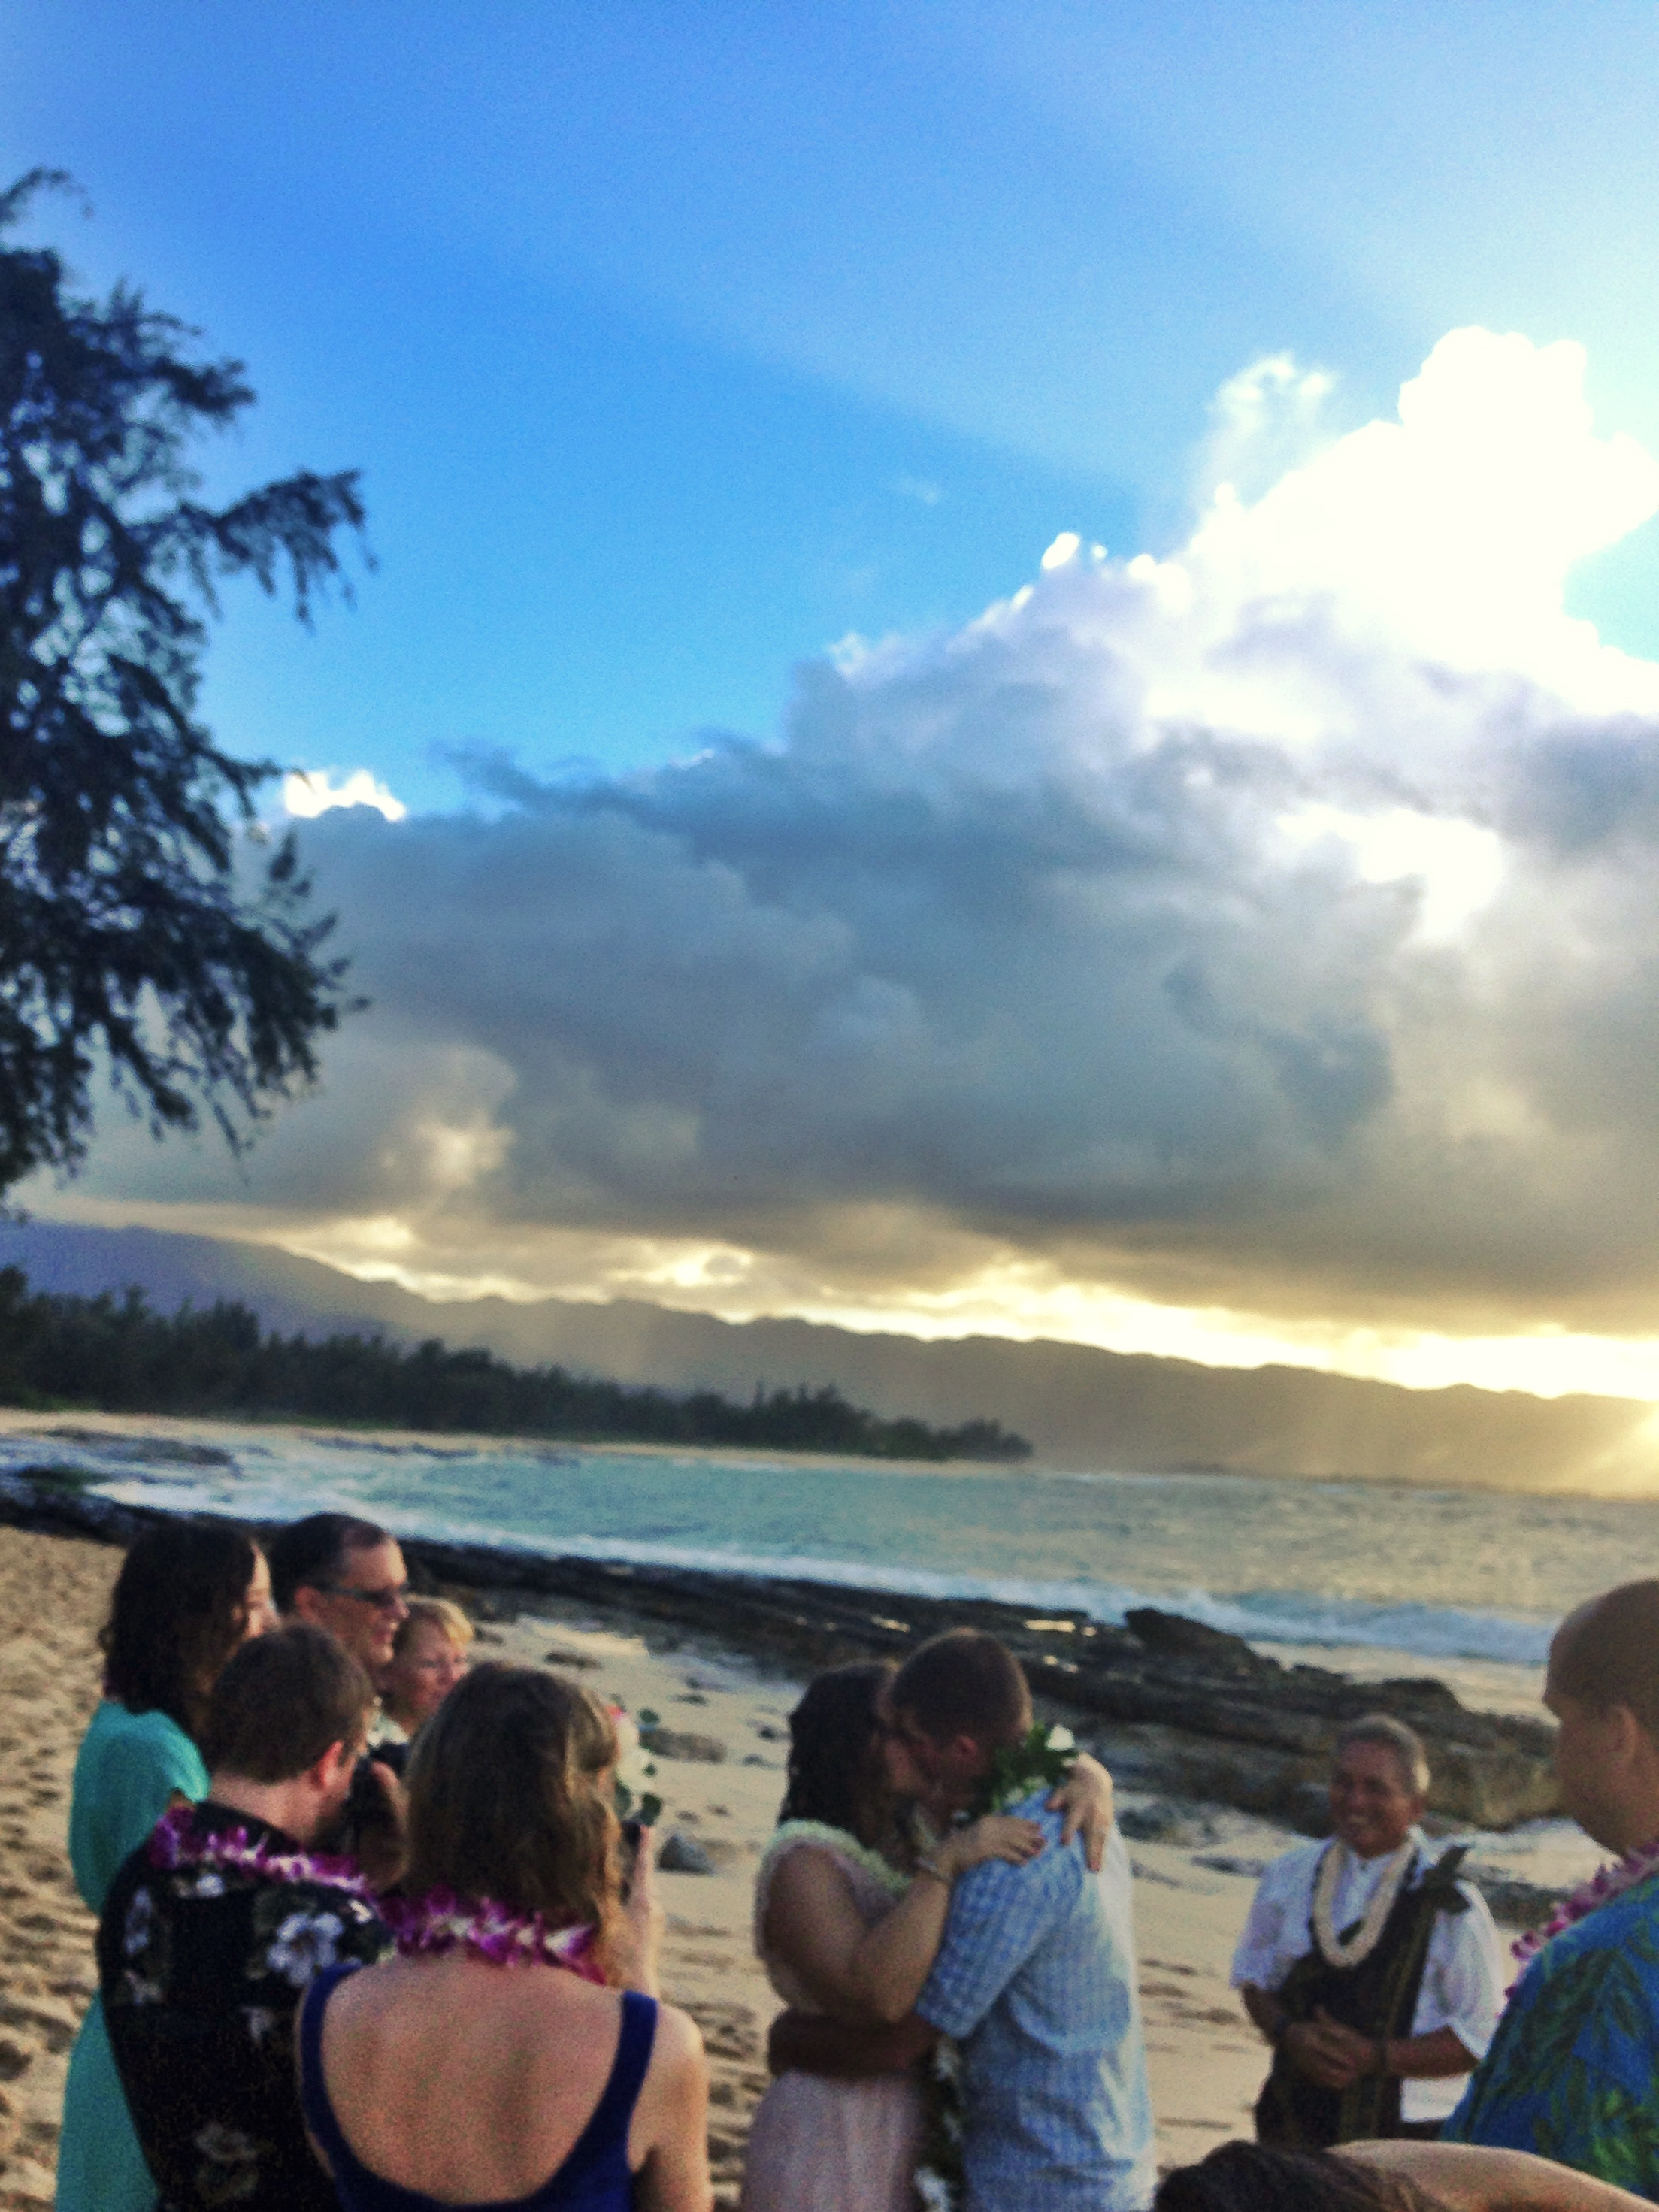 jacqueline-caleb-hawaii-wedding-sunset-kiss